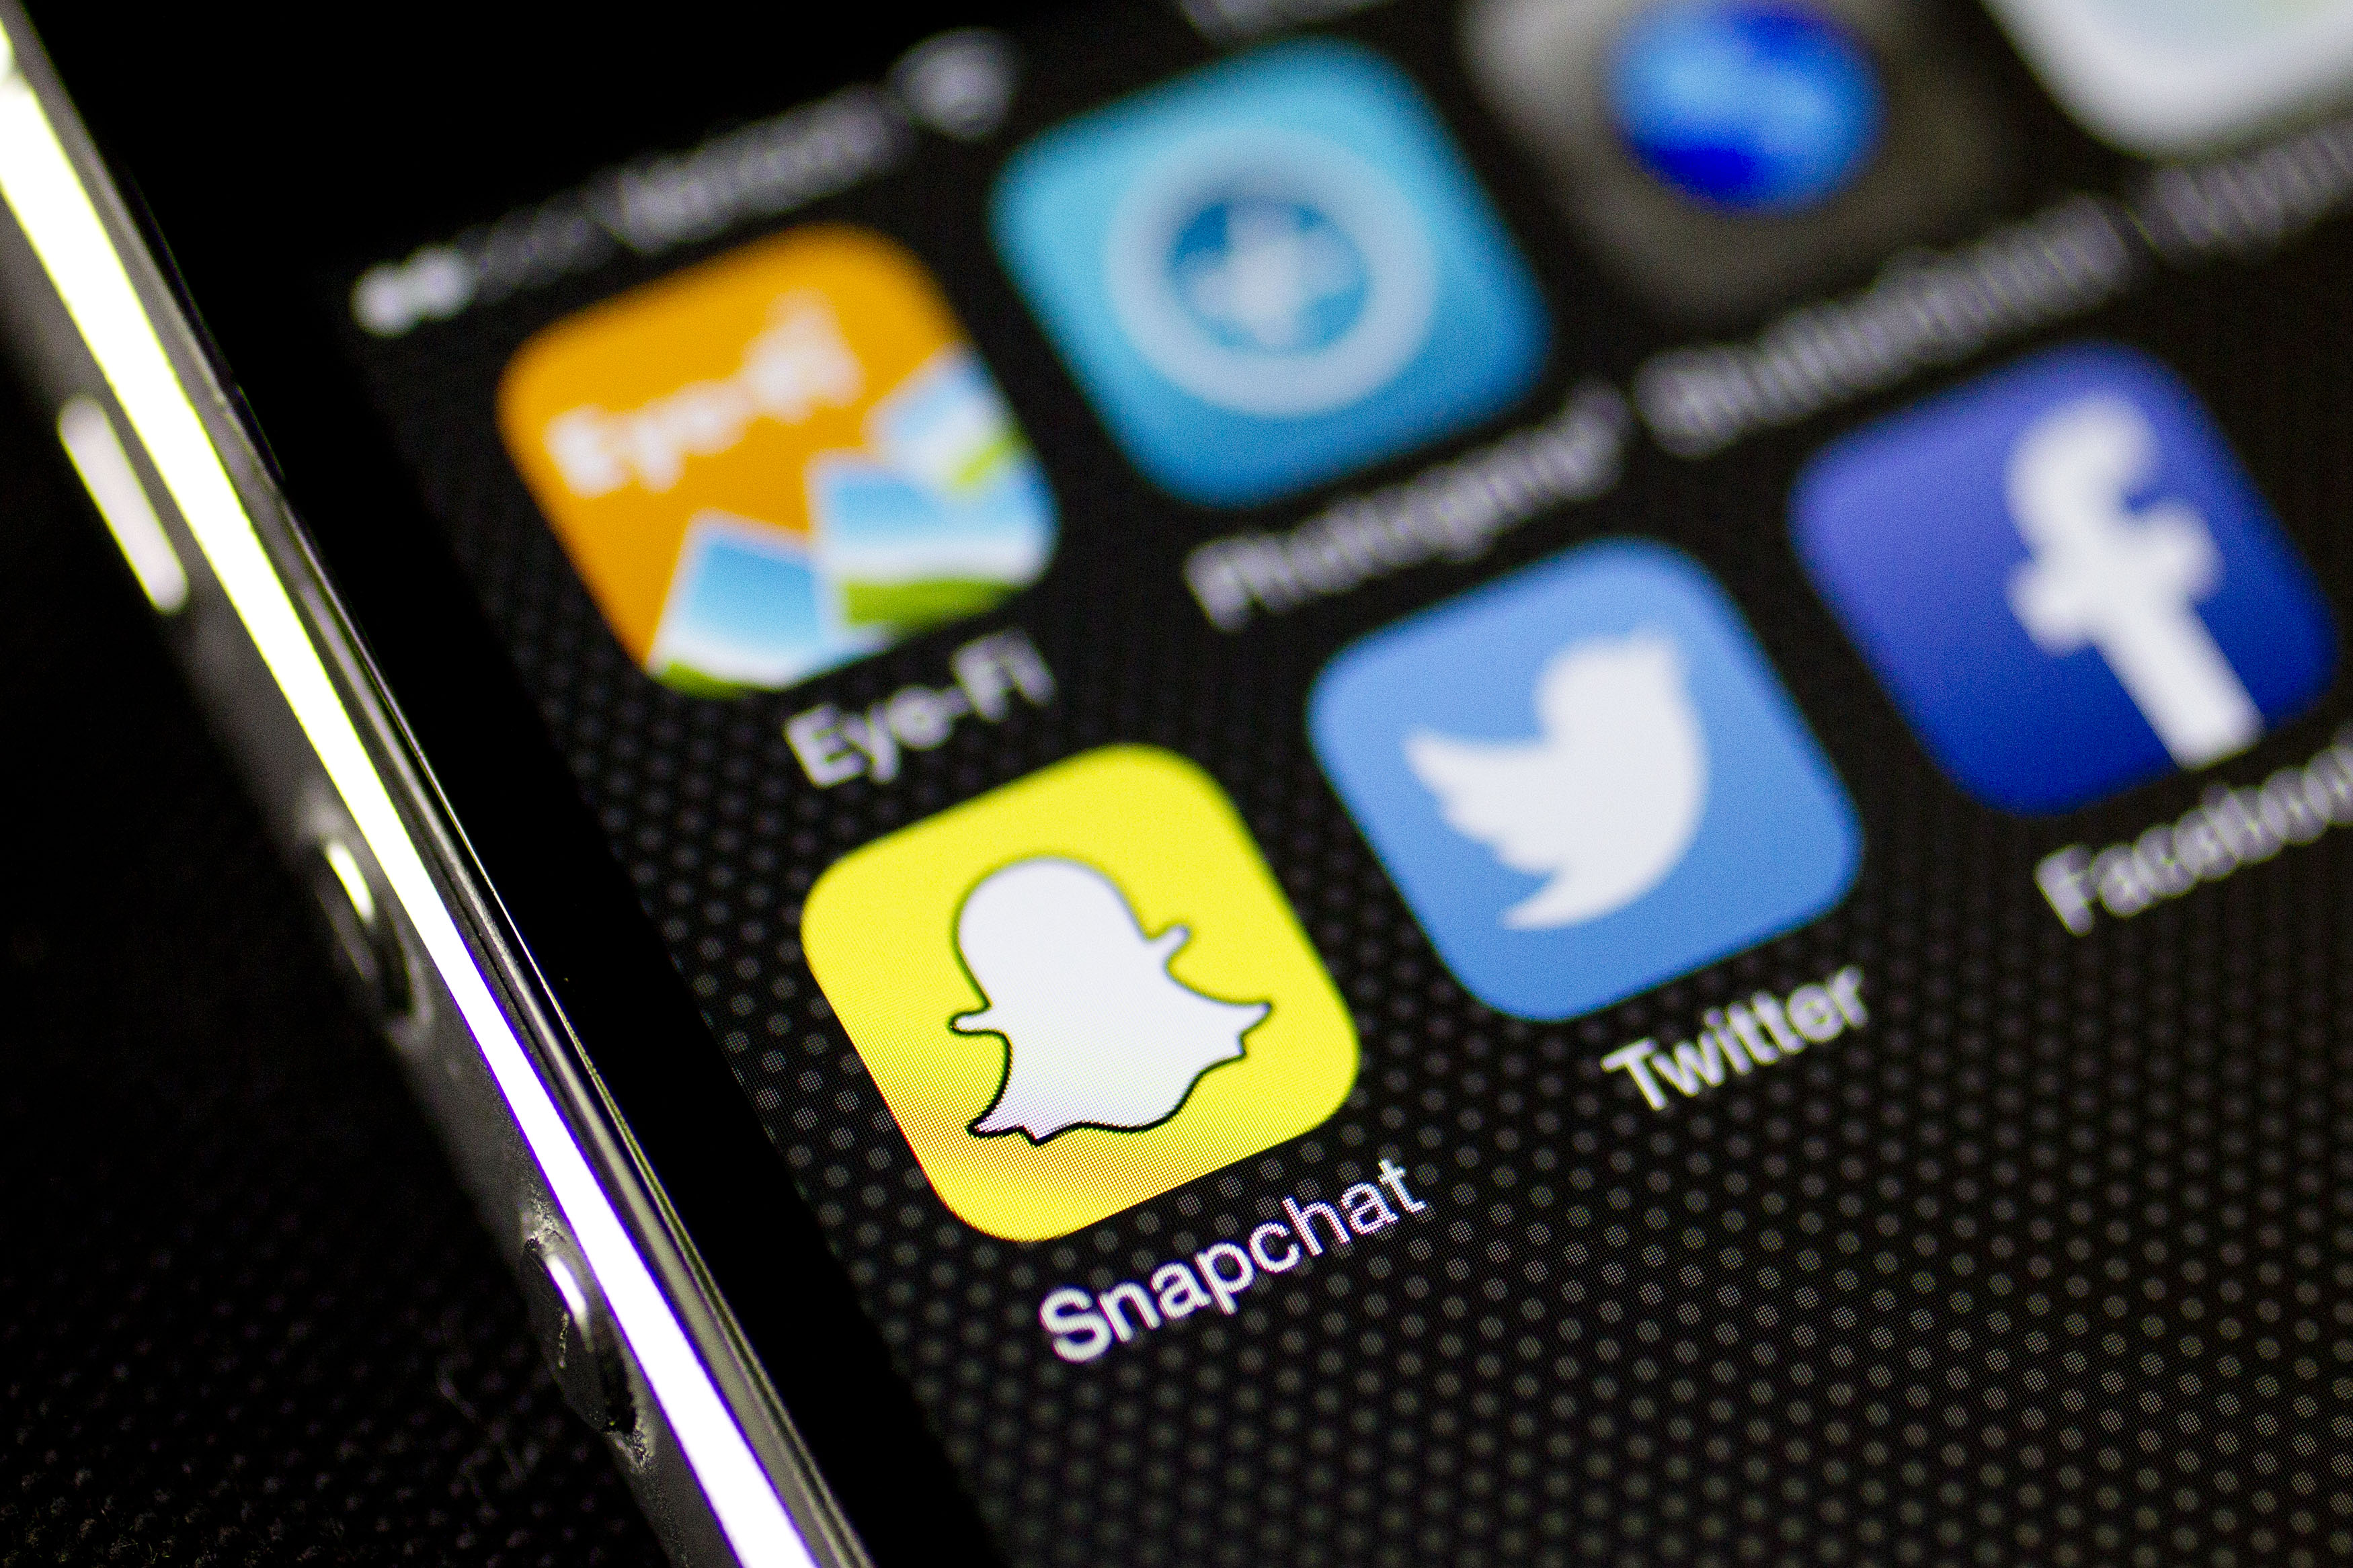 Snapchat has secured $1.8 billion in funding.